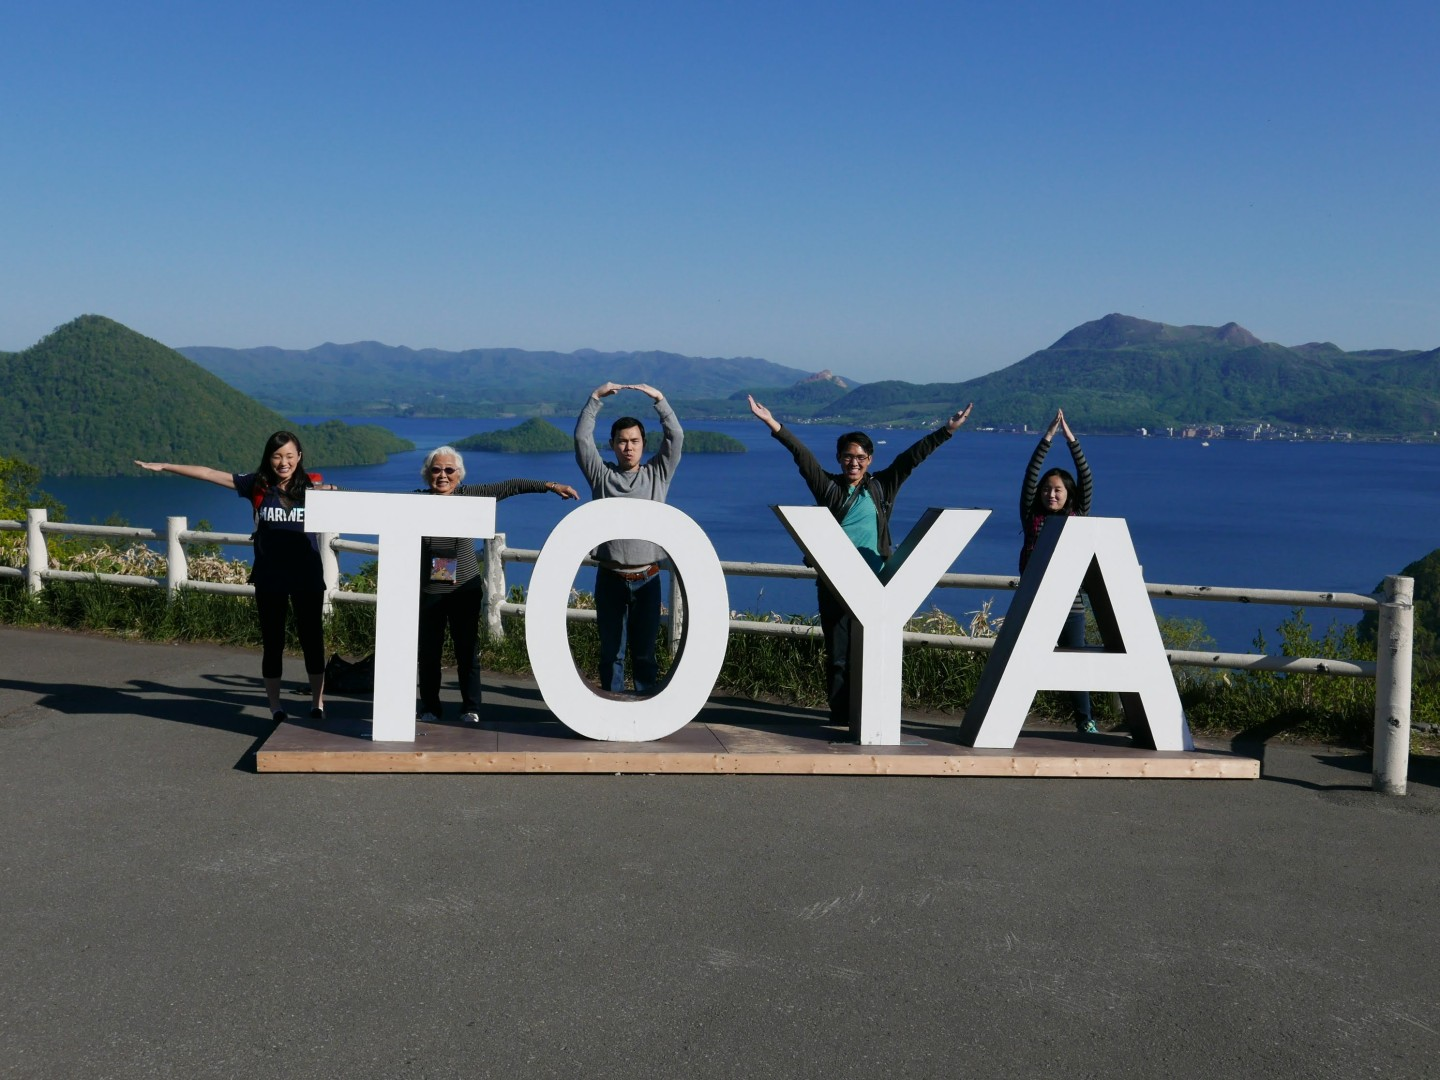 We enjoyed the people we met, the beautiful scenery, the variety of experiences, and the delicious food.